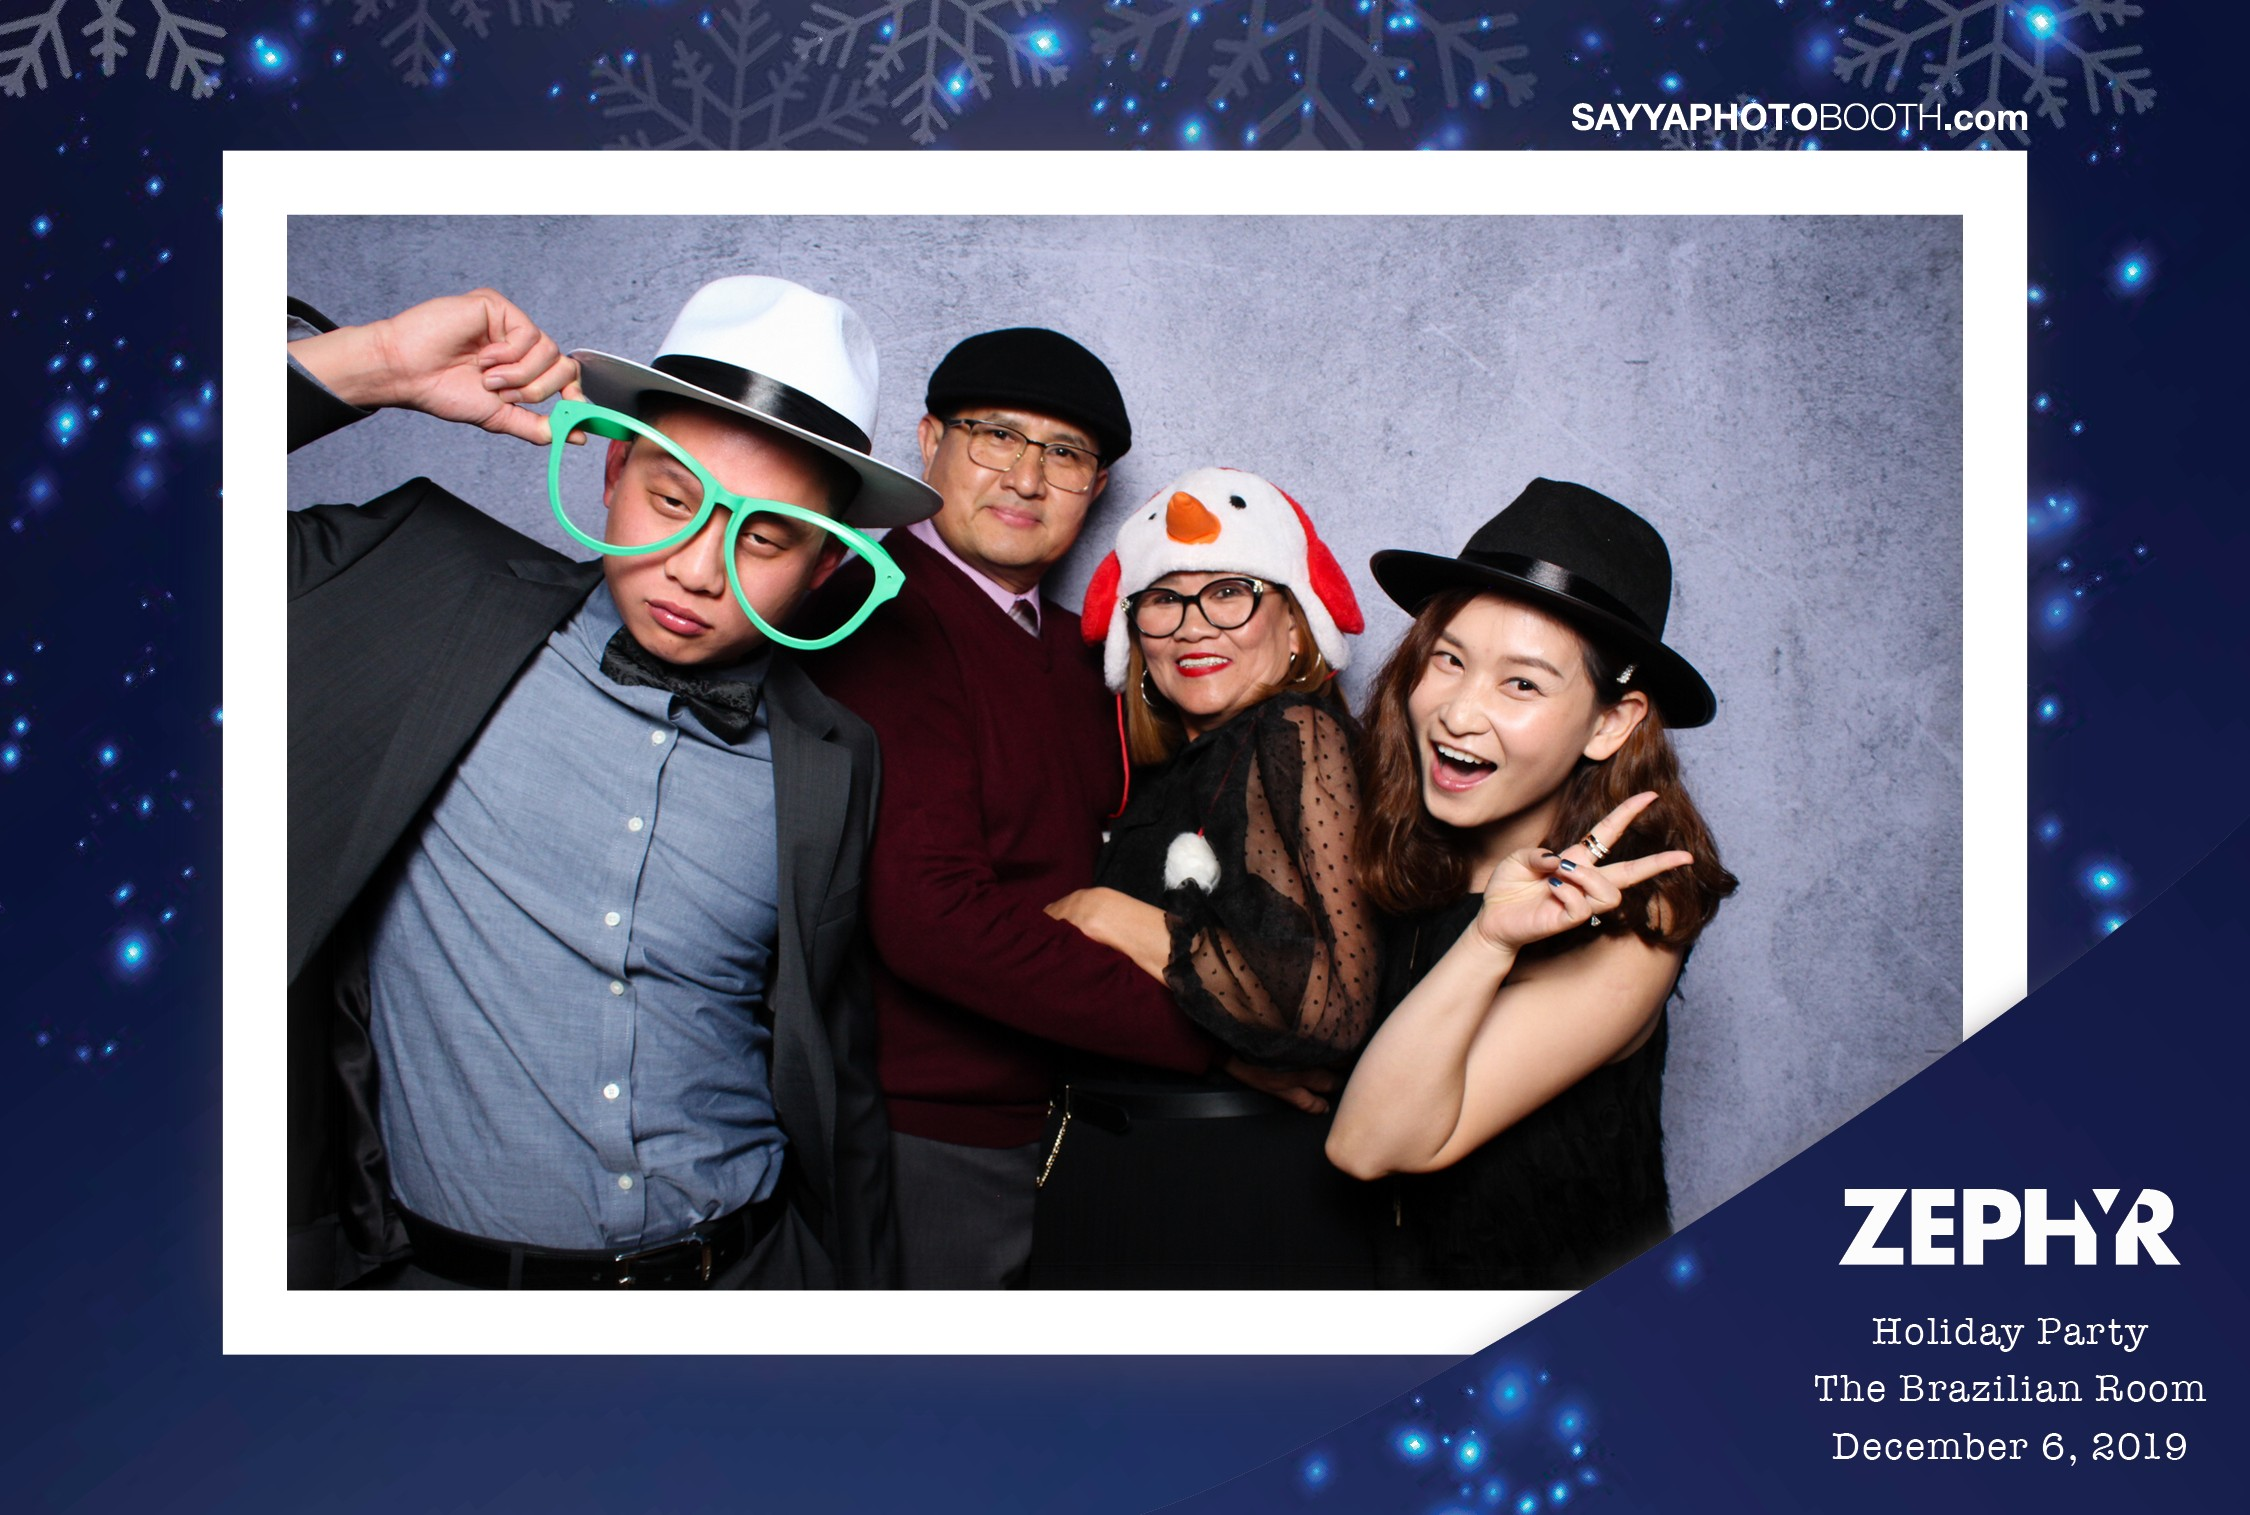 ZEPHYR Holiday Party